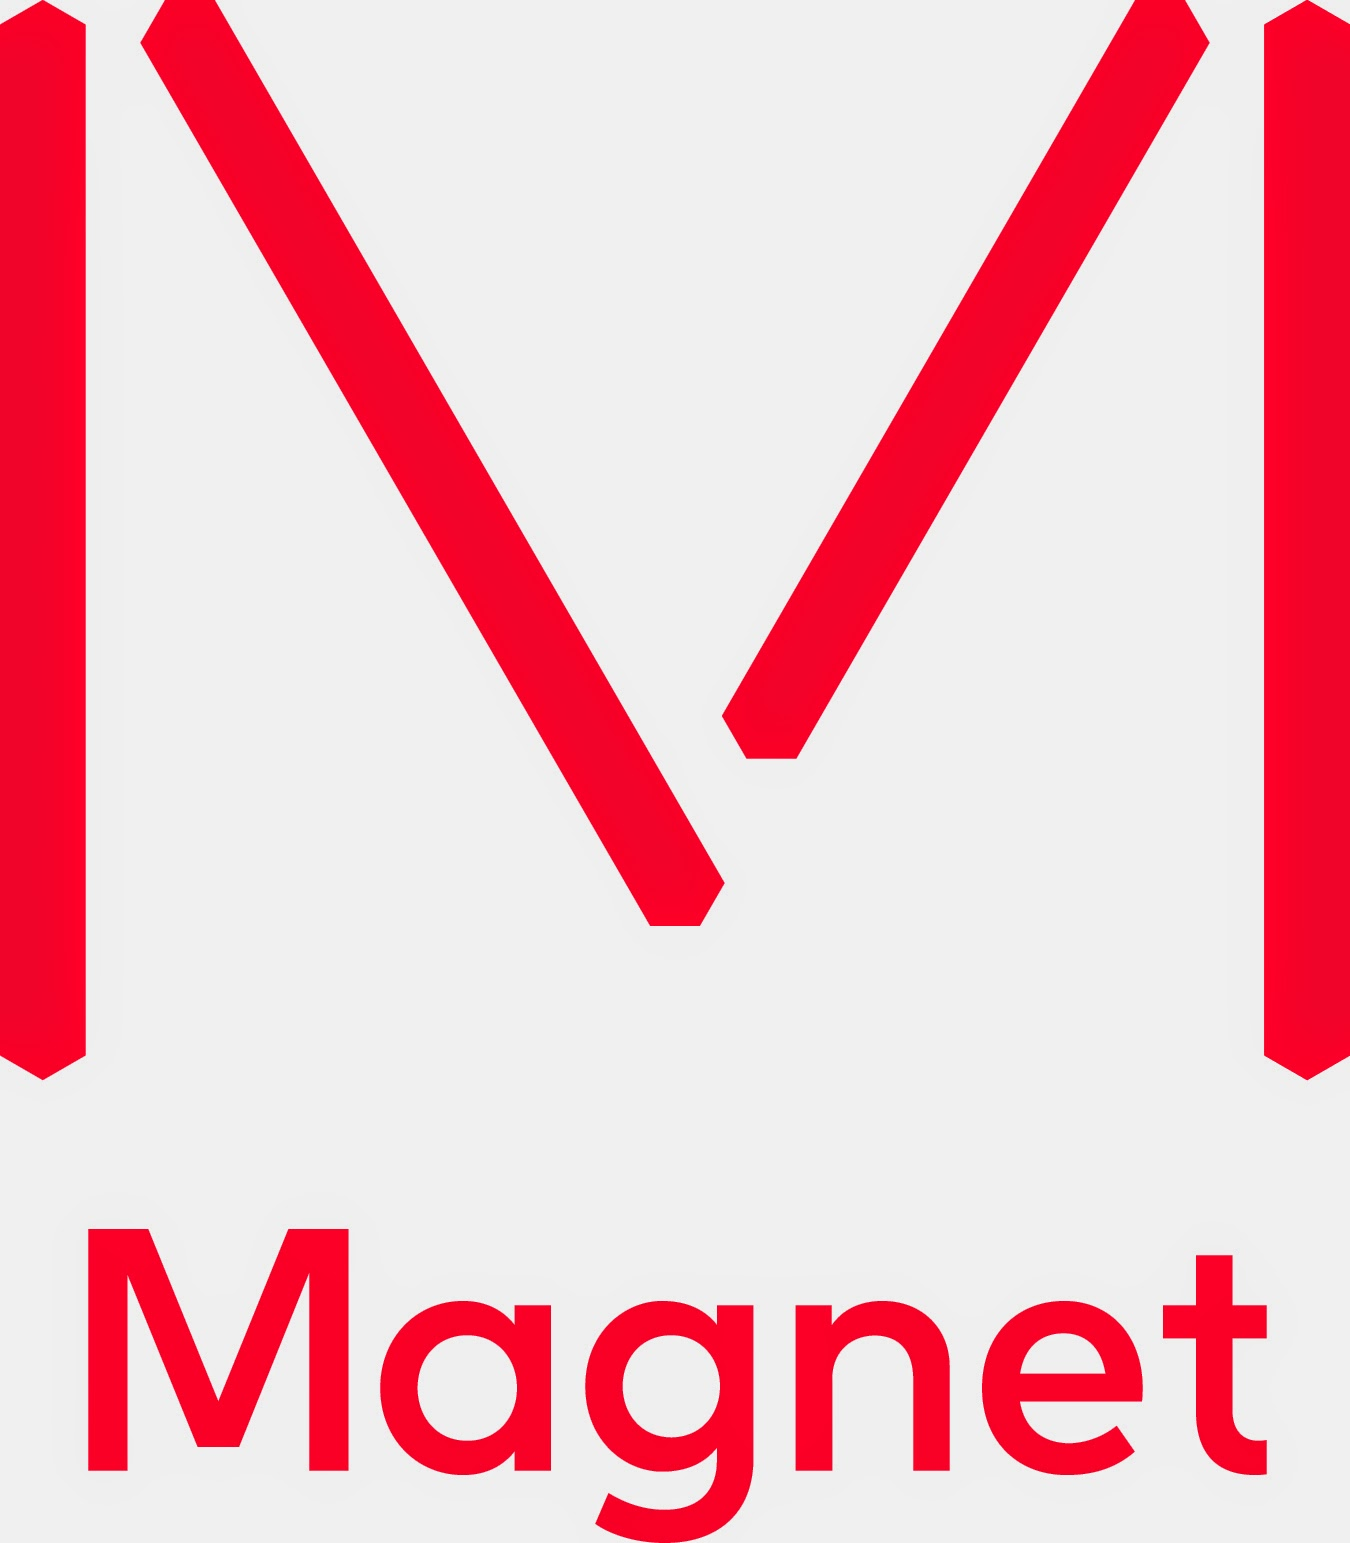 http://www.magnet.today/